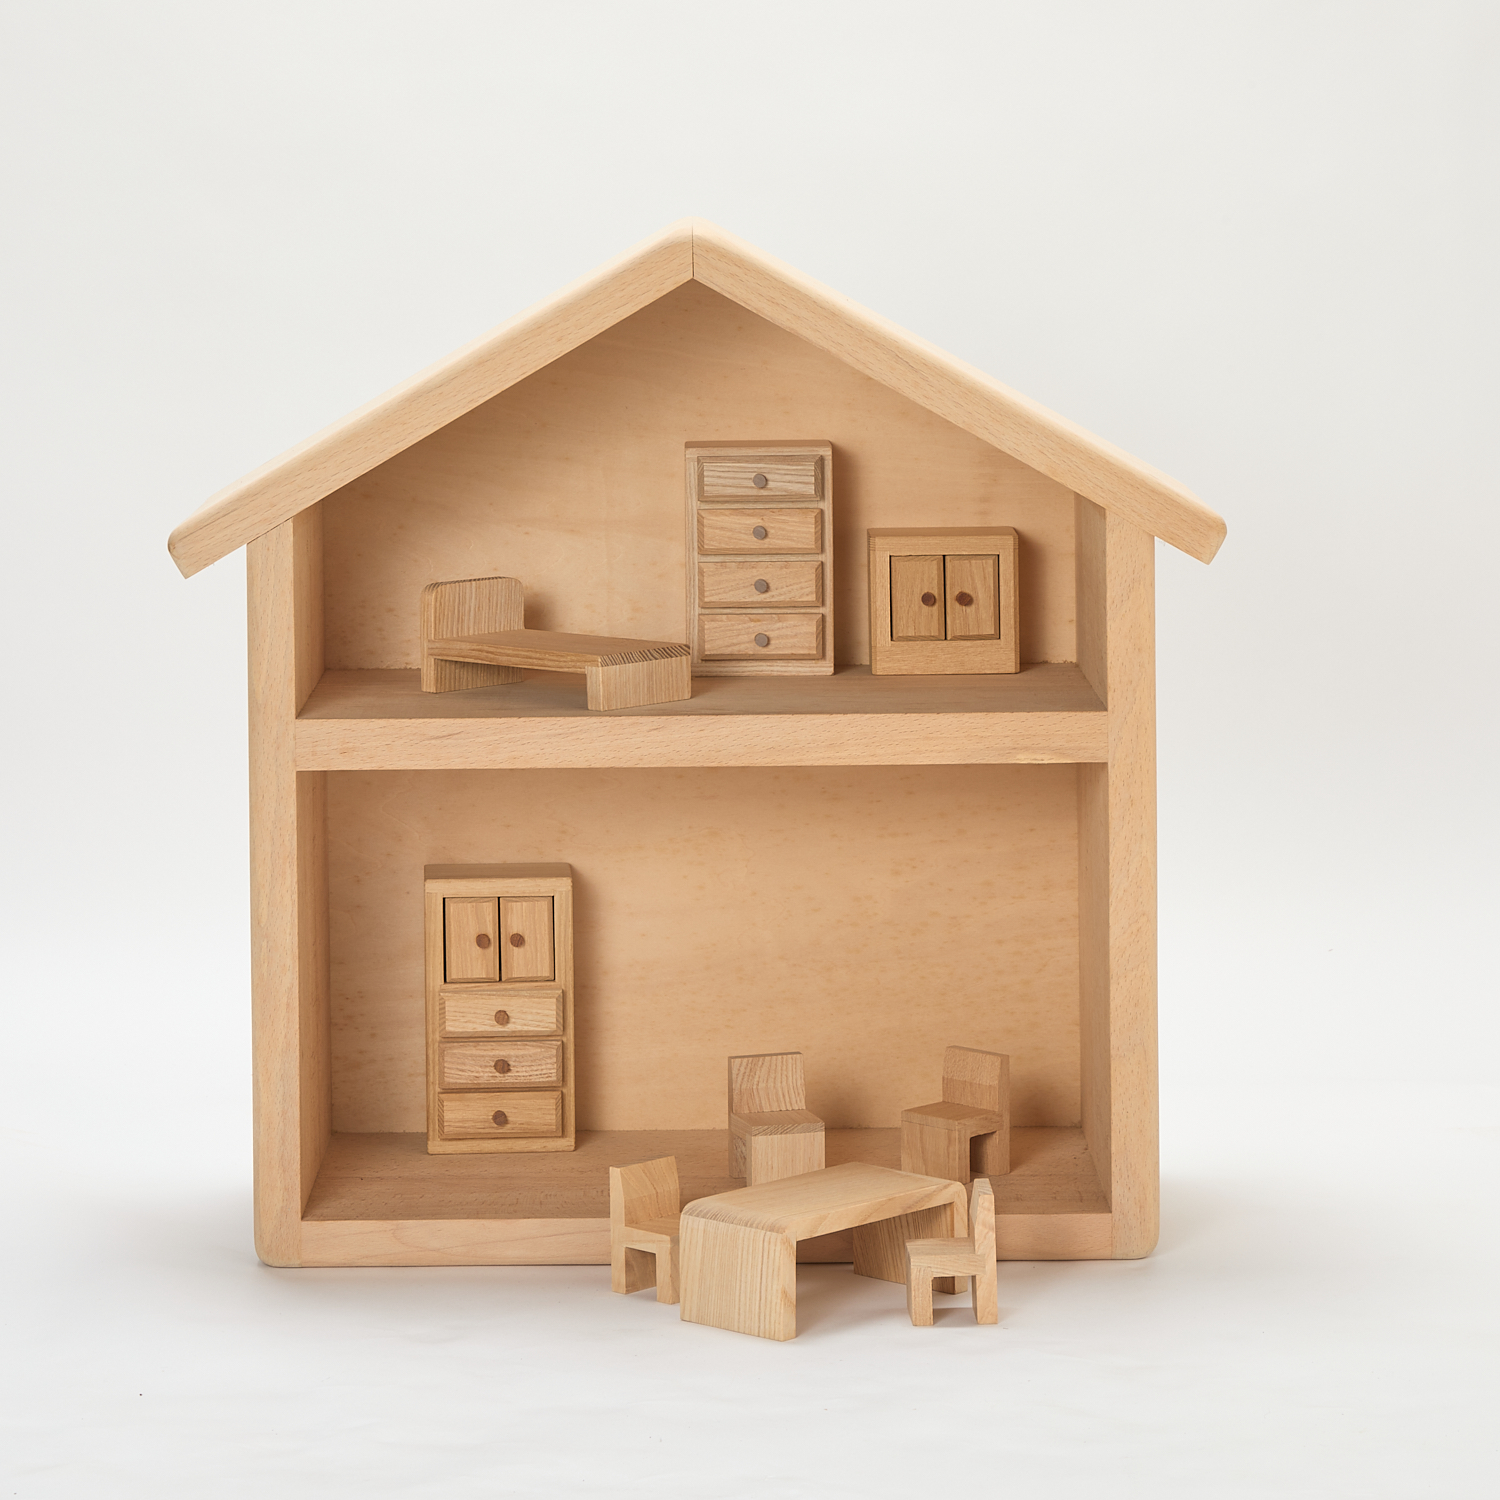 Wooden Doll House with Furniture Full Set